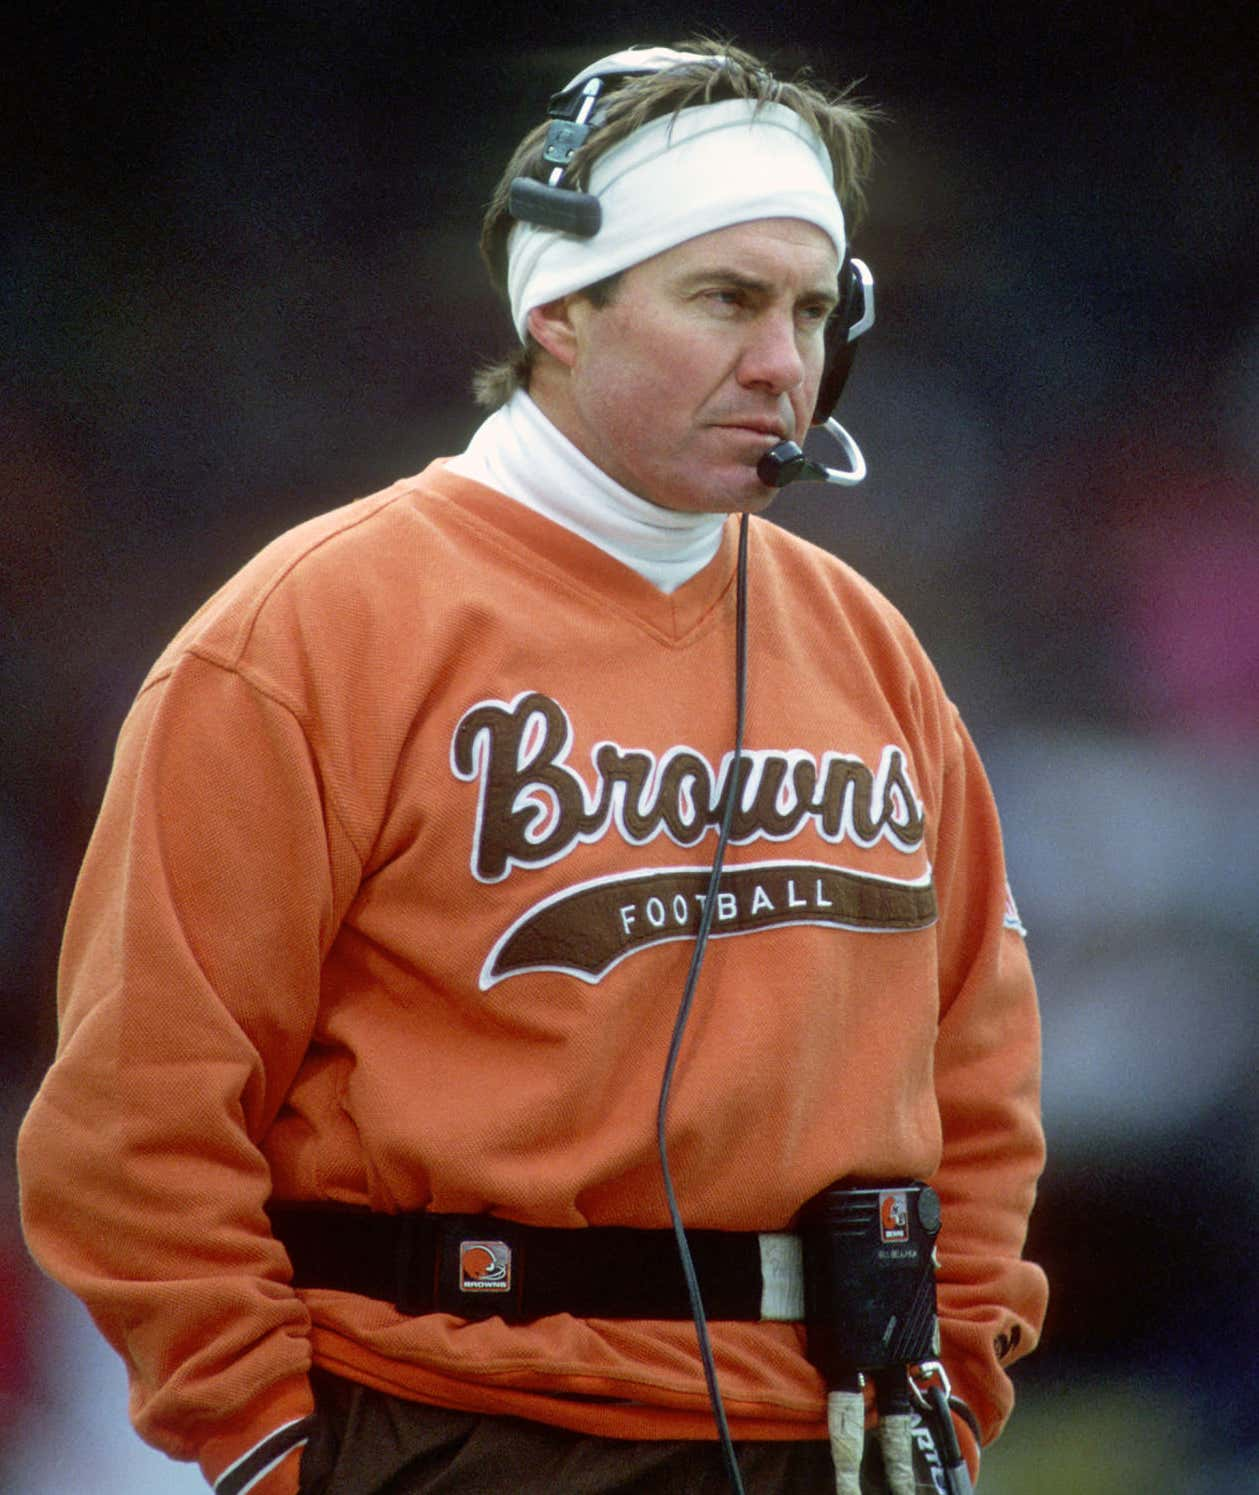 CLEVELAND, OH - NOVEMBER 7:  Head coach Bill Belichick of the Cleveland Browns looks on from the sideline during a game against the Denver Broncos at Cleveland Municipal Stadium on November 7, 1993 in Cleveland, Ohio.  The Broncos defeated the Browns 29-14.  (Photo by George Gojkovich/Getty Images)